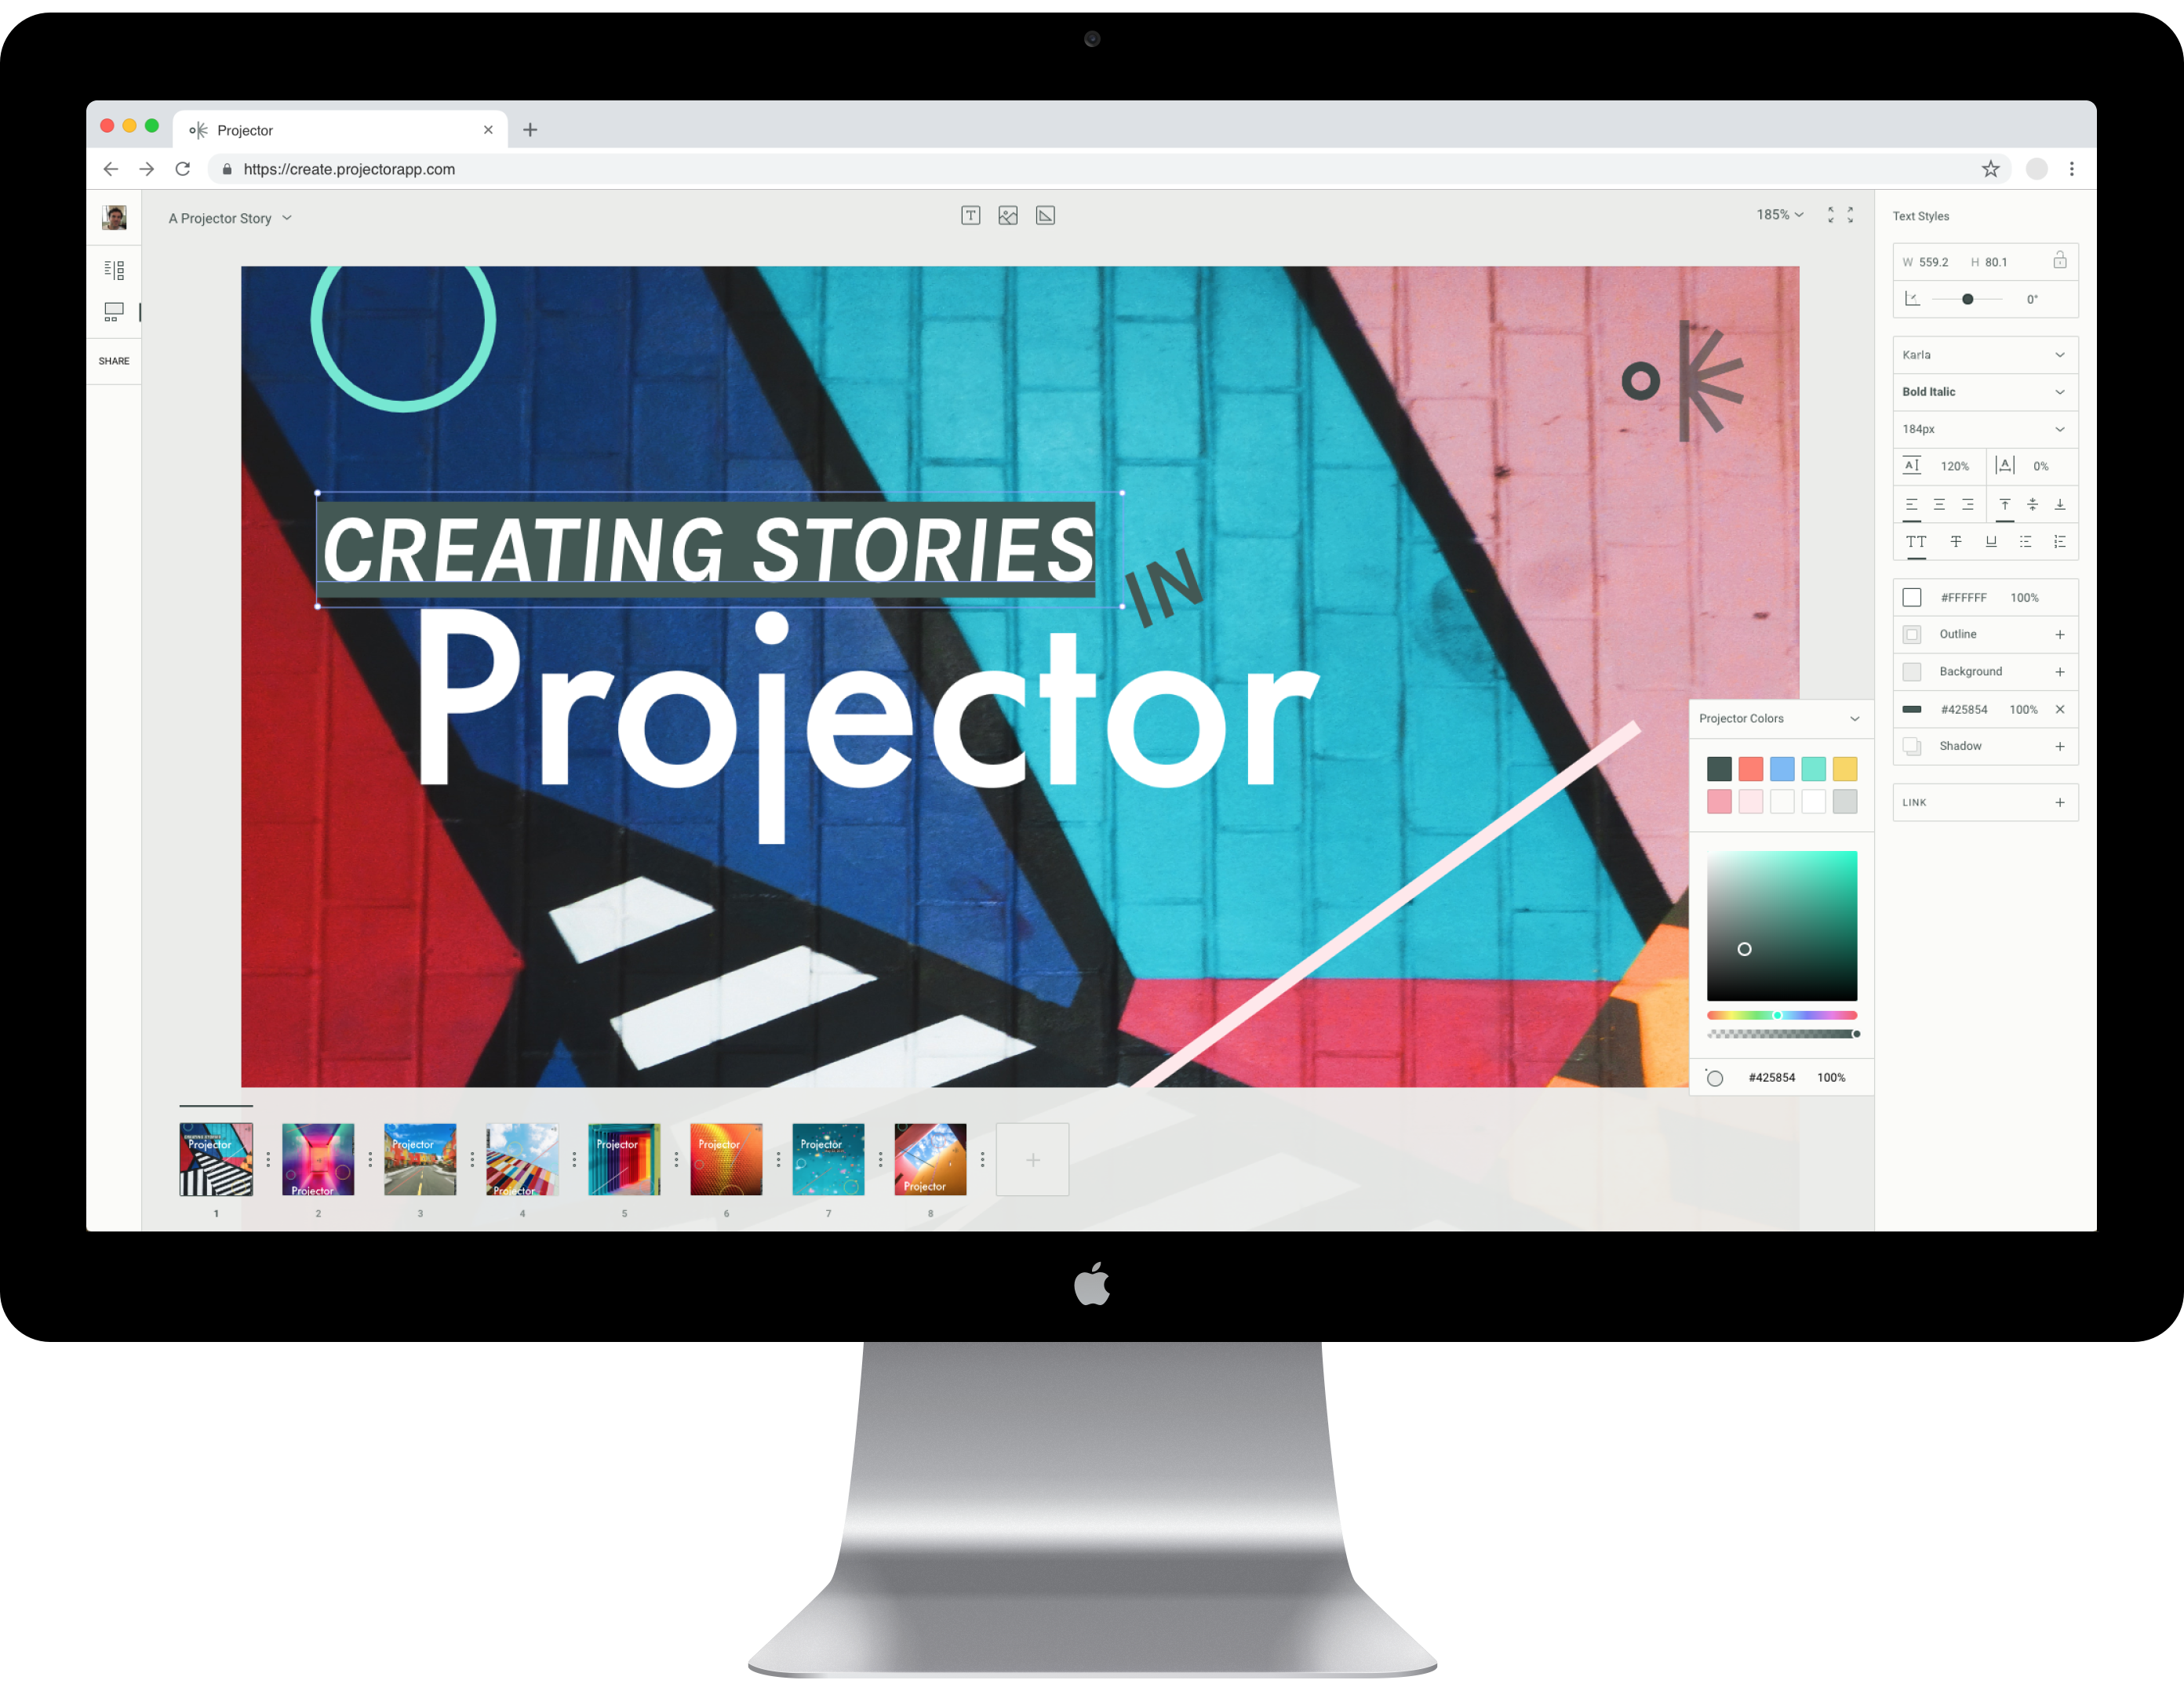 techcrunch.com - Kate Clark - Meet Projector, collaborative design software for the Instagram age